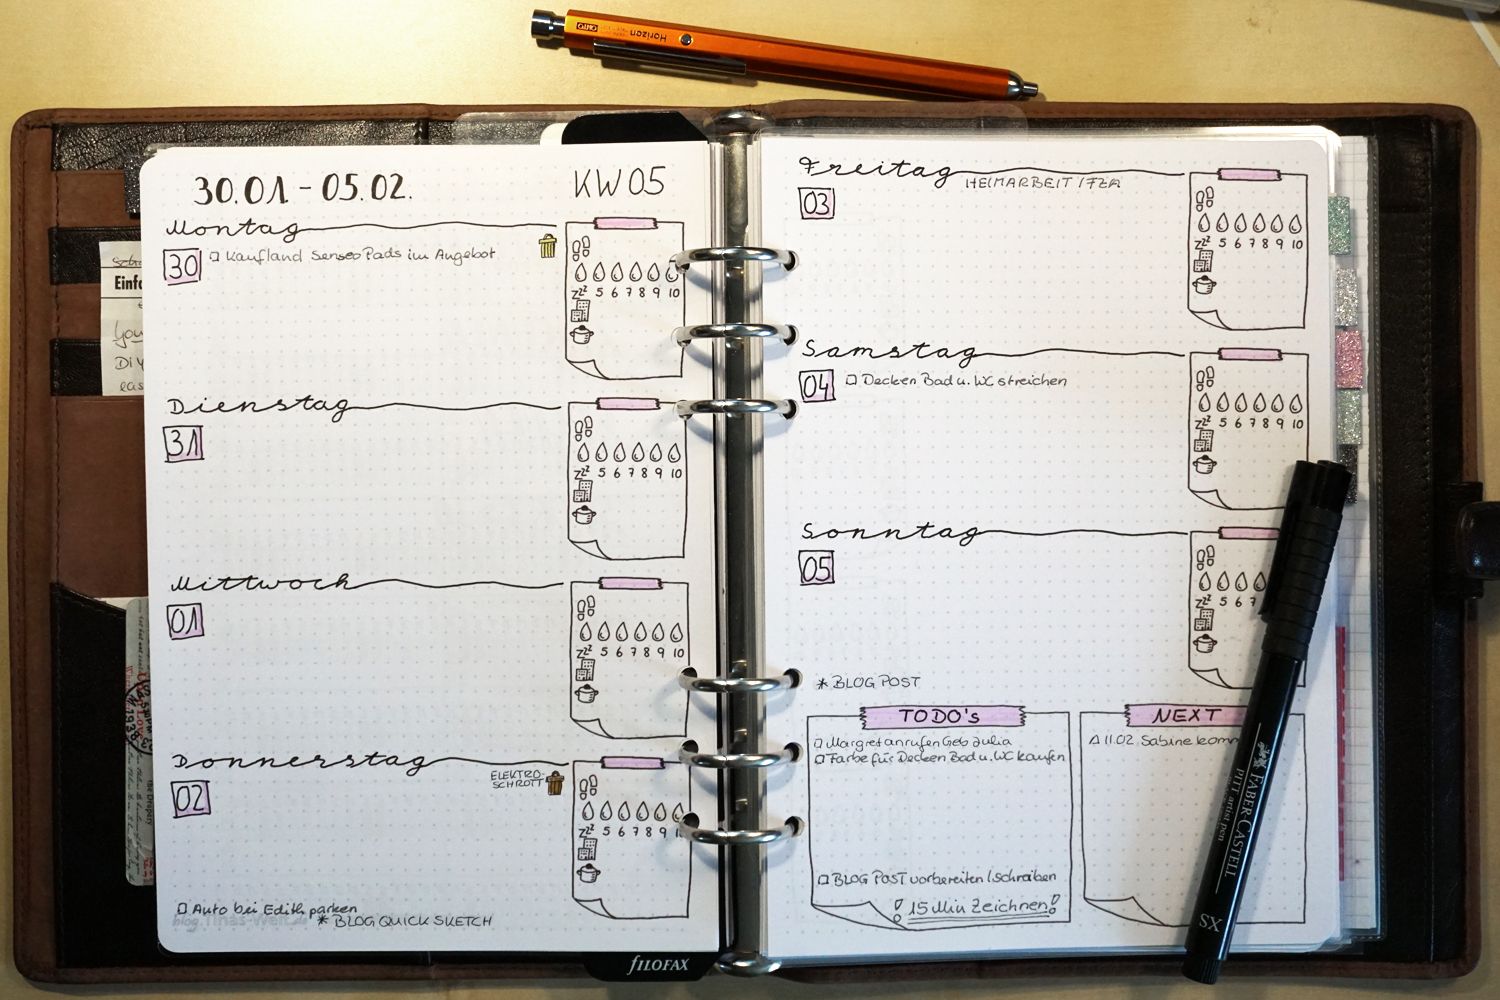 Bullet Journal / Filofax A5 printable – Februar 2017 | blog.Tinas ...